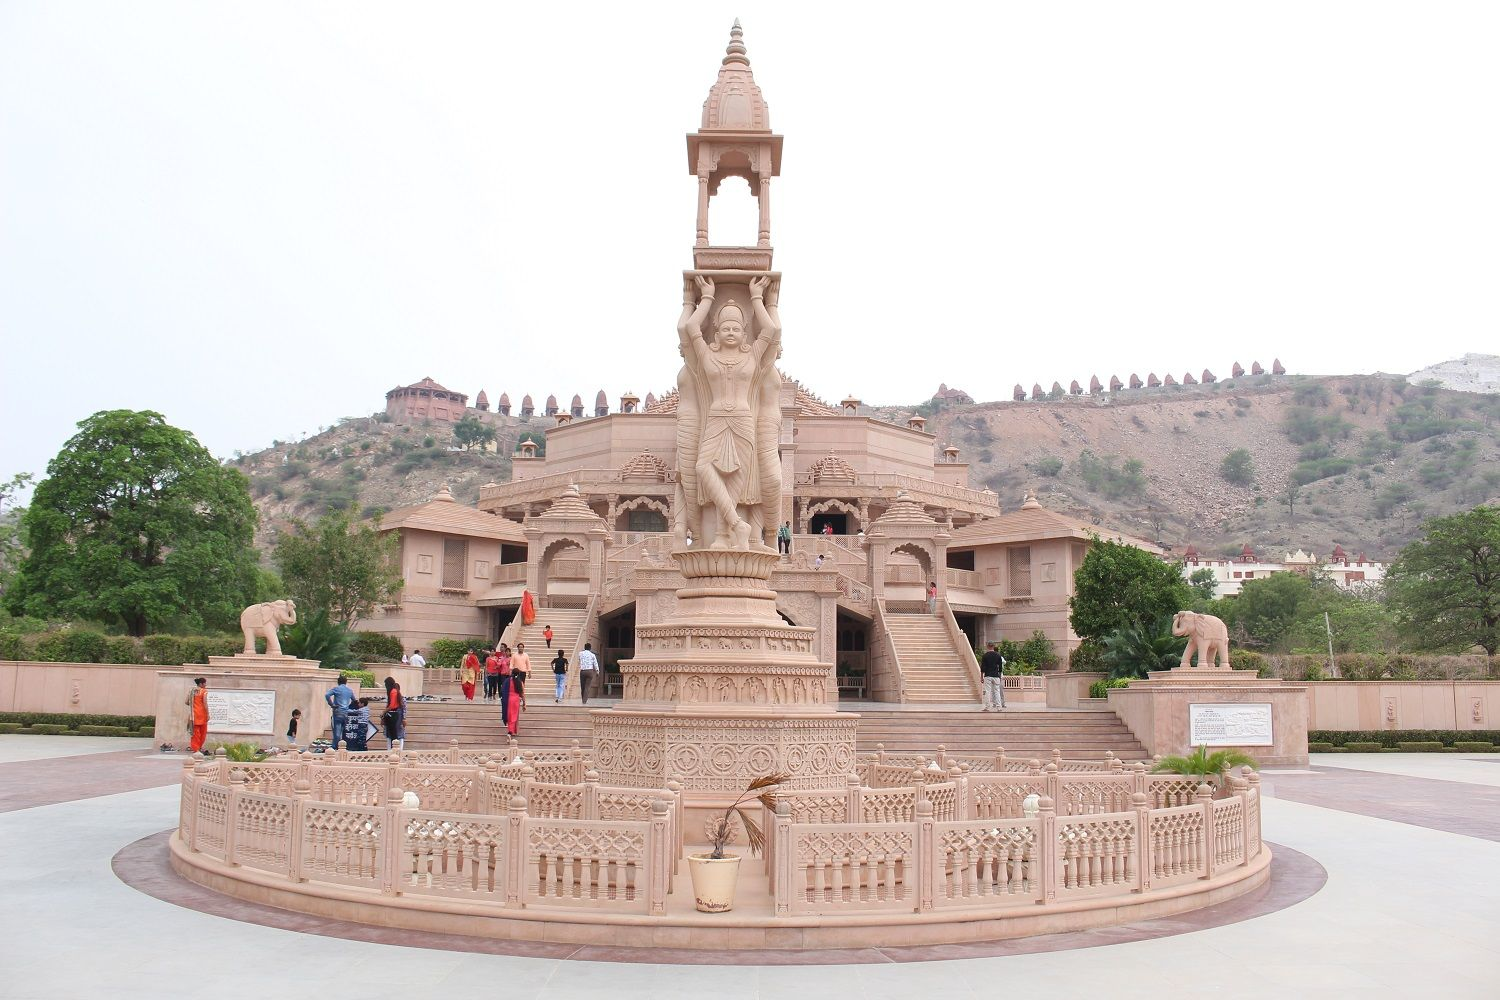 Ziptrips In Offers All Inclusive Hassle Free Day Tours And Weekend Tours All Across India Lake Foy Sagar Is A Picturesque India Vacation 2 Days Trip Day Trip